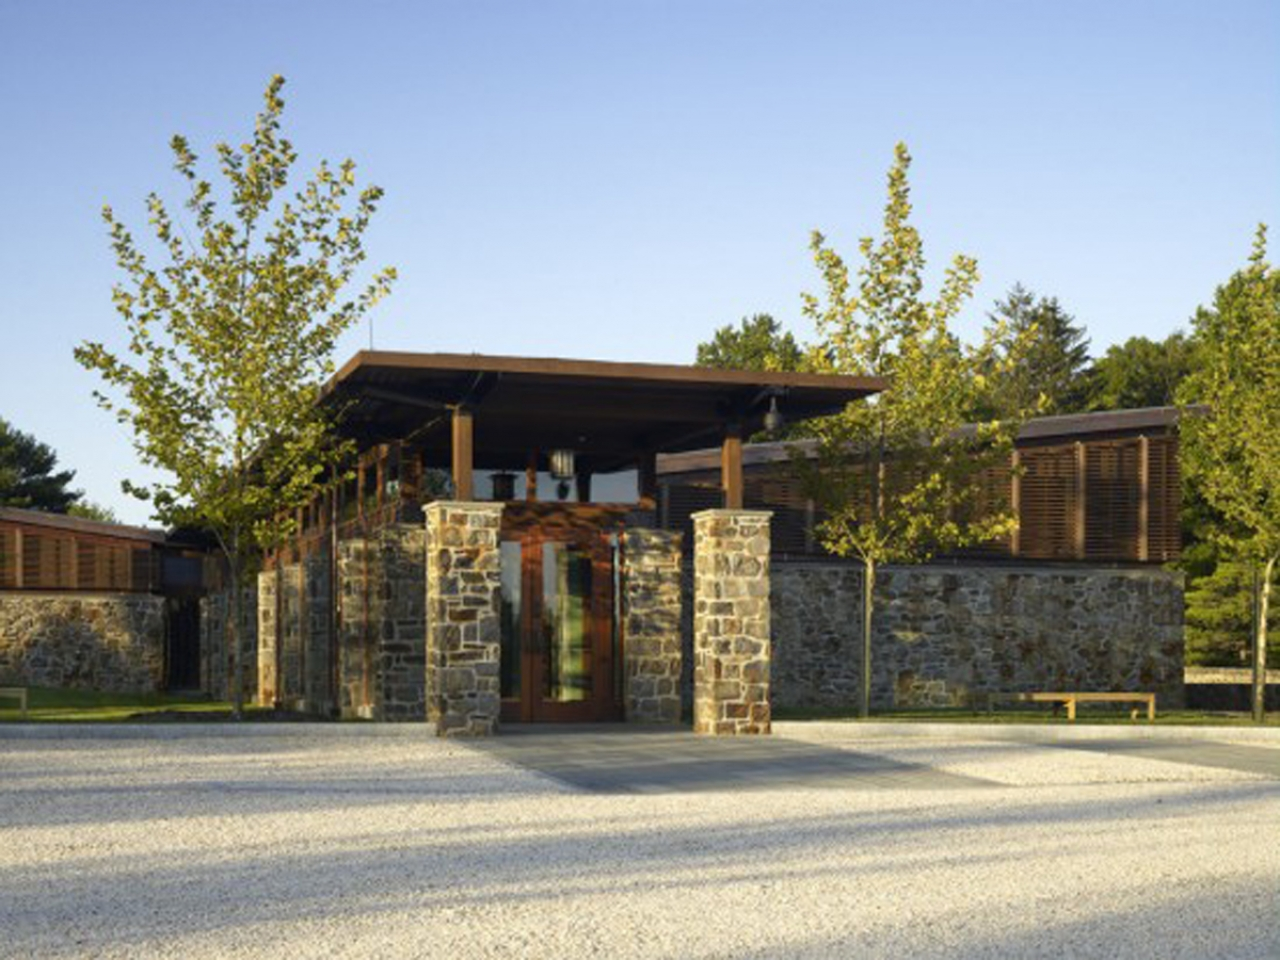 Stone Home Designs: Post And Beam Homes Sustainable Stone Home Designs One Of